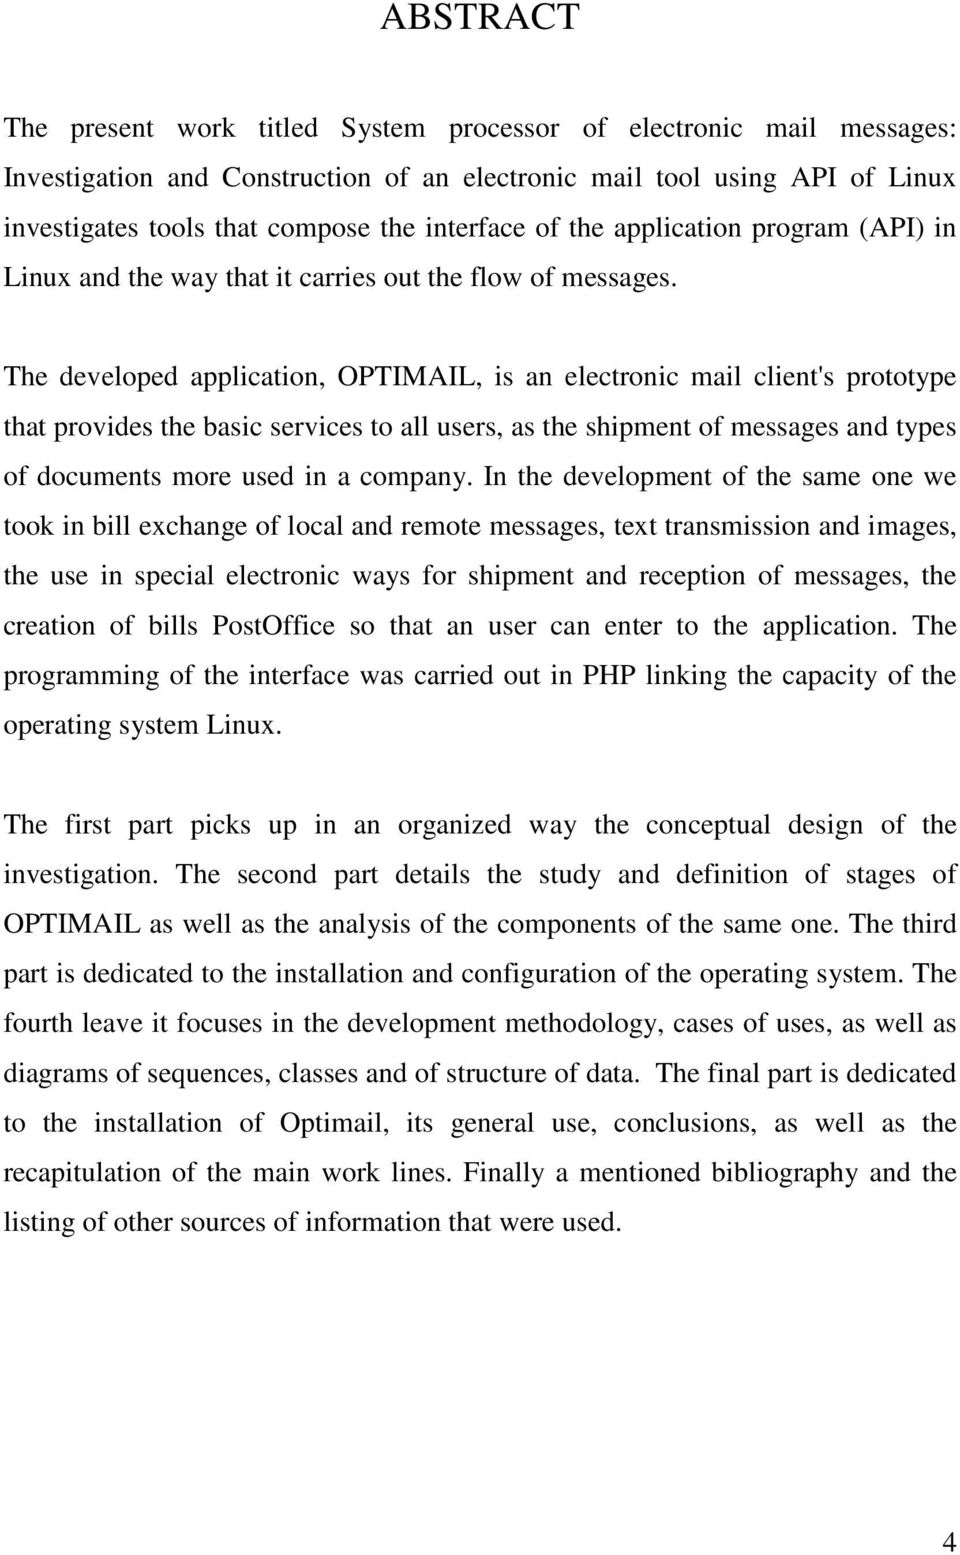 The developed application, OPTIMAIL, is an electronic mail client's prototype that provides the basic services to all users, as the shipment of messages and types of documents more used in a company.